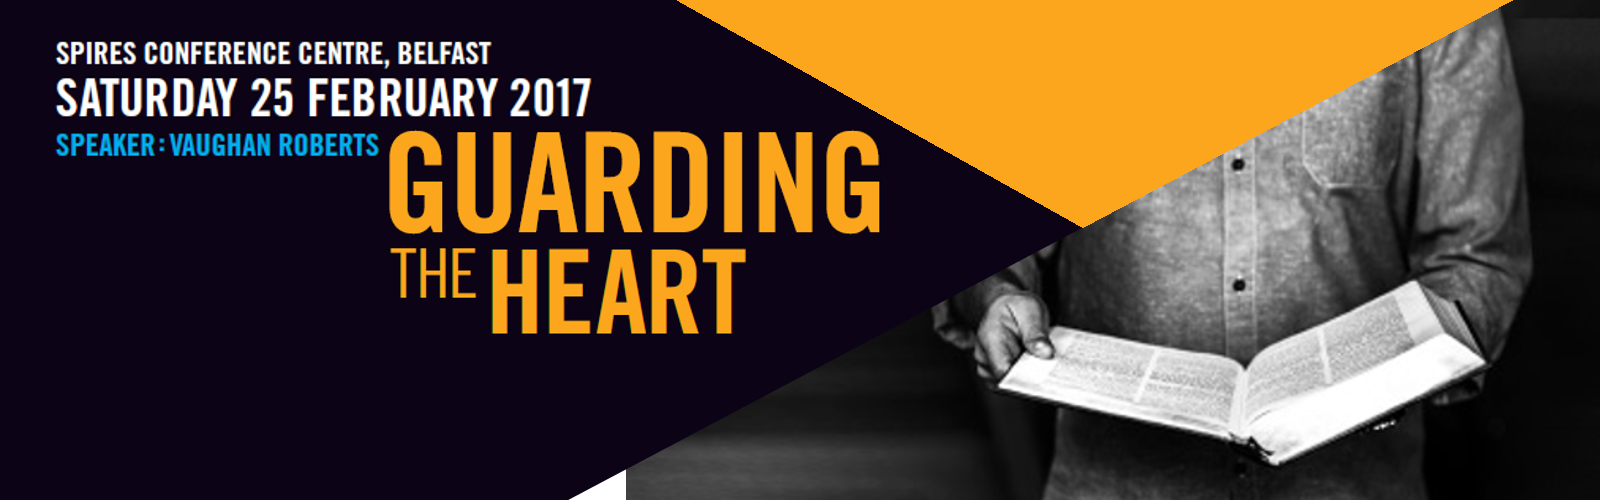 IMC 2017 - Guarding the Heart